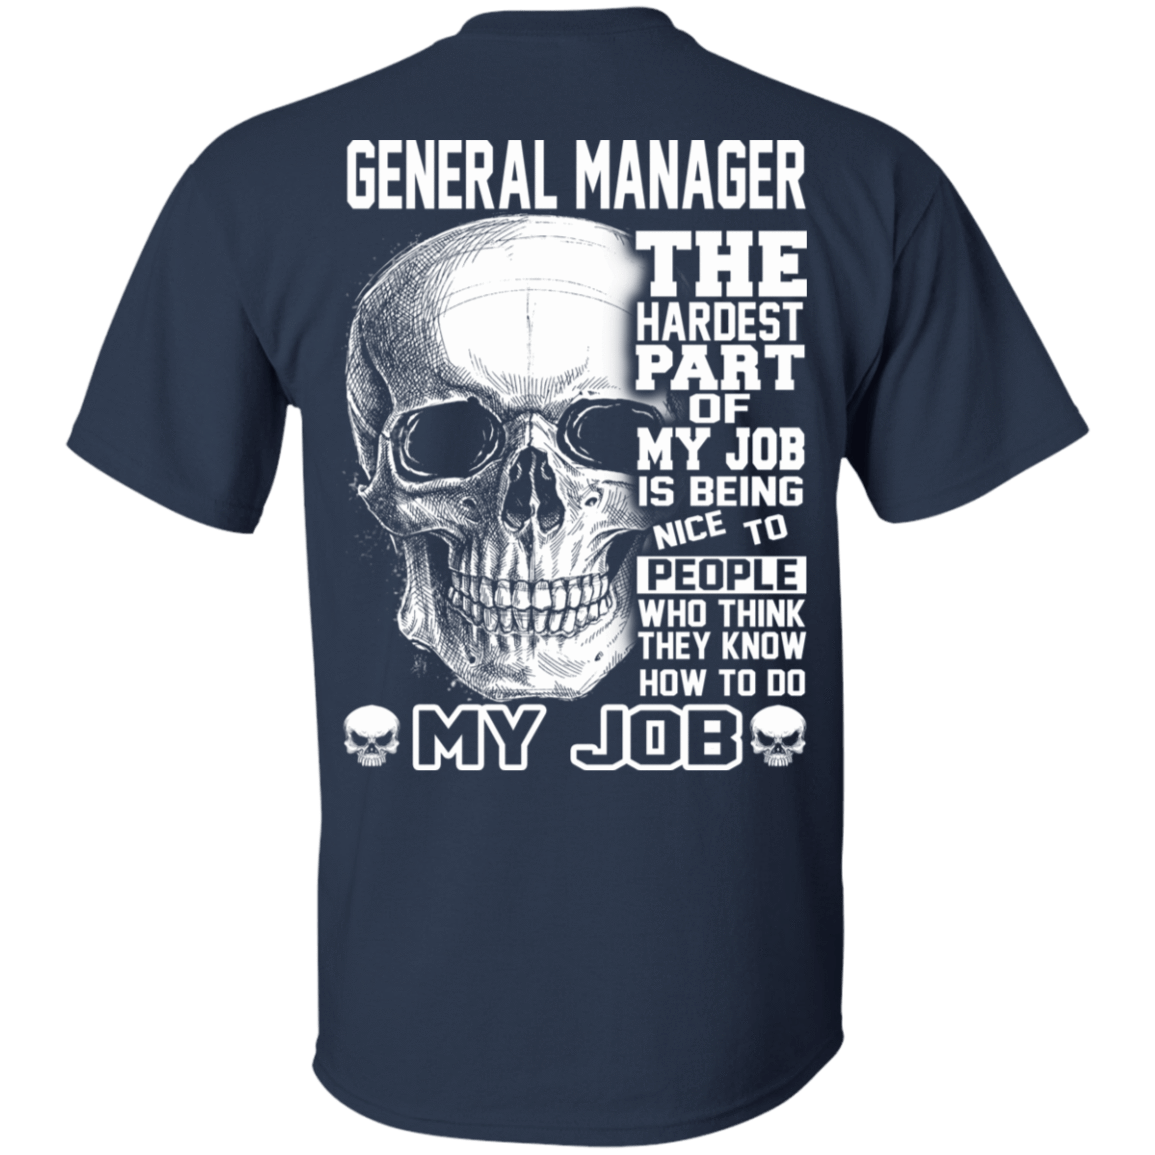 General Manager The Hardest Part Of My Job 22-111-71609227-250 - Tee Ript